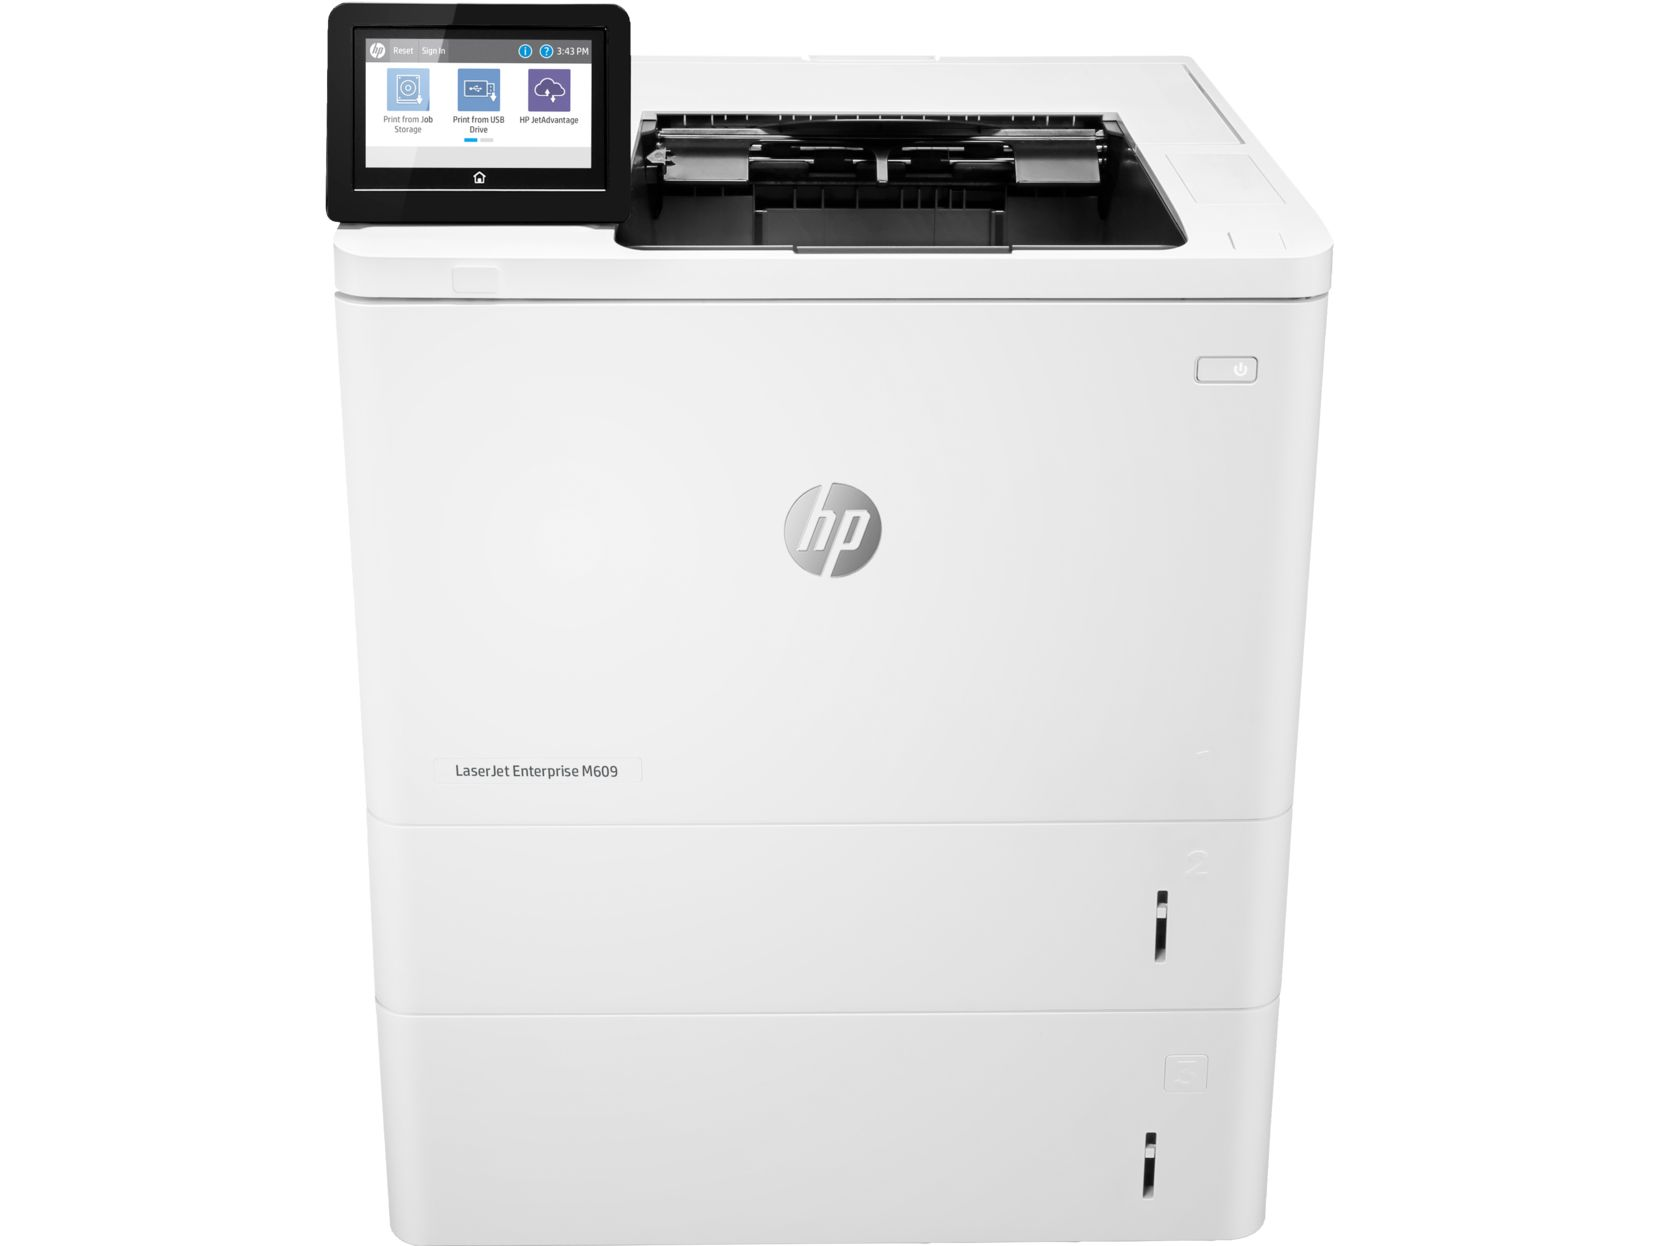 Фото - Принтер лазерный HP LaserJet Enterprise M609x (K0Q22A) A4 Duplex Net WiFi принтер лазерный brother hl l8260cdw hll8260cdwr1 a4 duplex net wifi